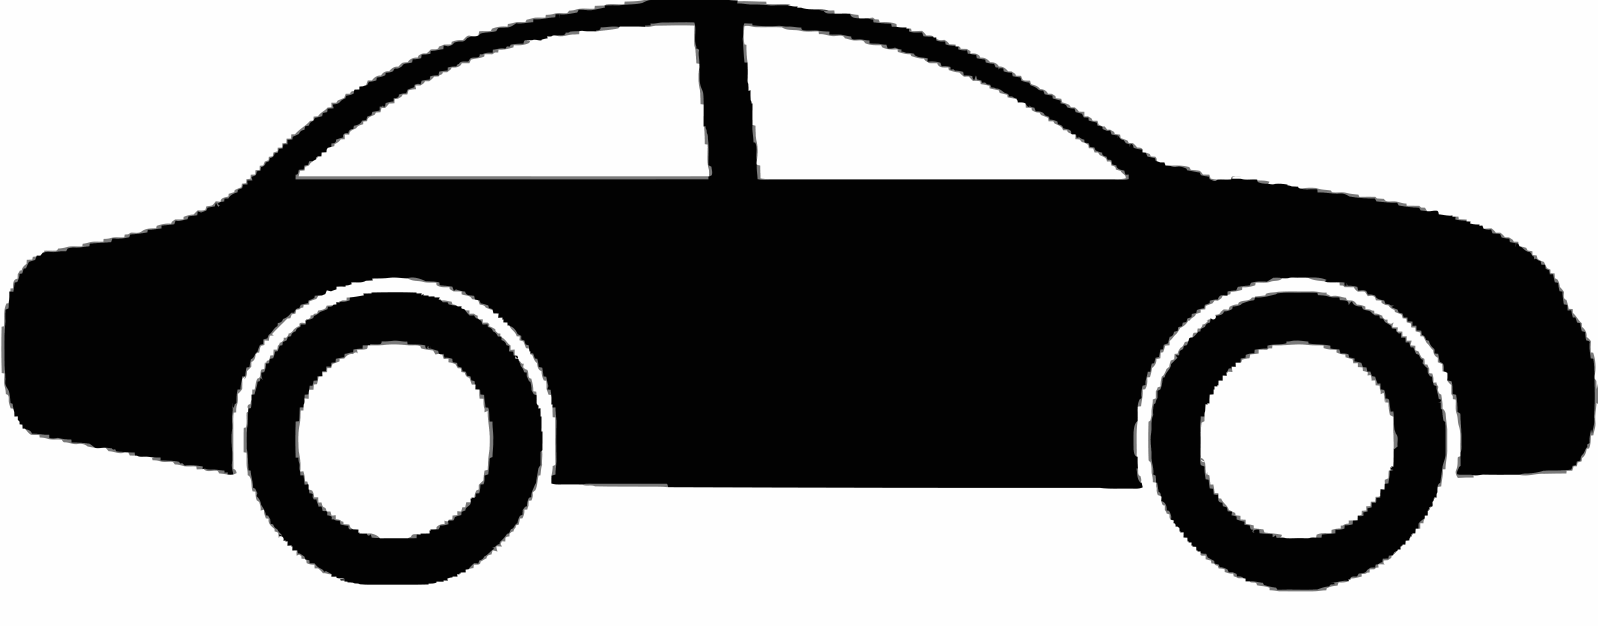 Car V Vectorized   Free Images At Clker Com   Vector Clip Art Online